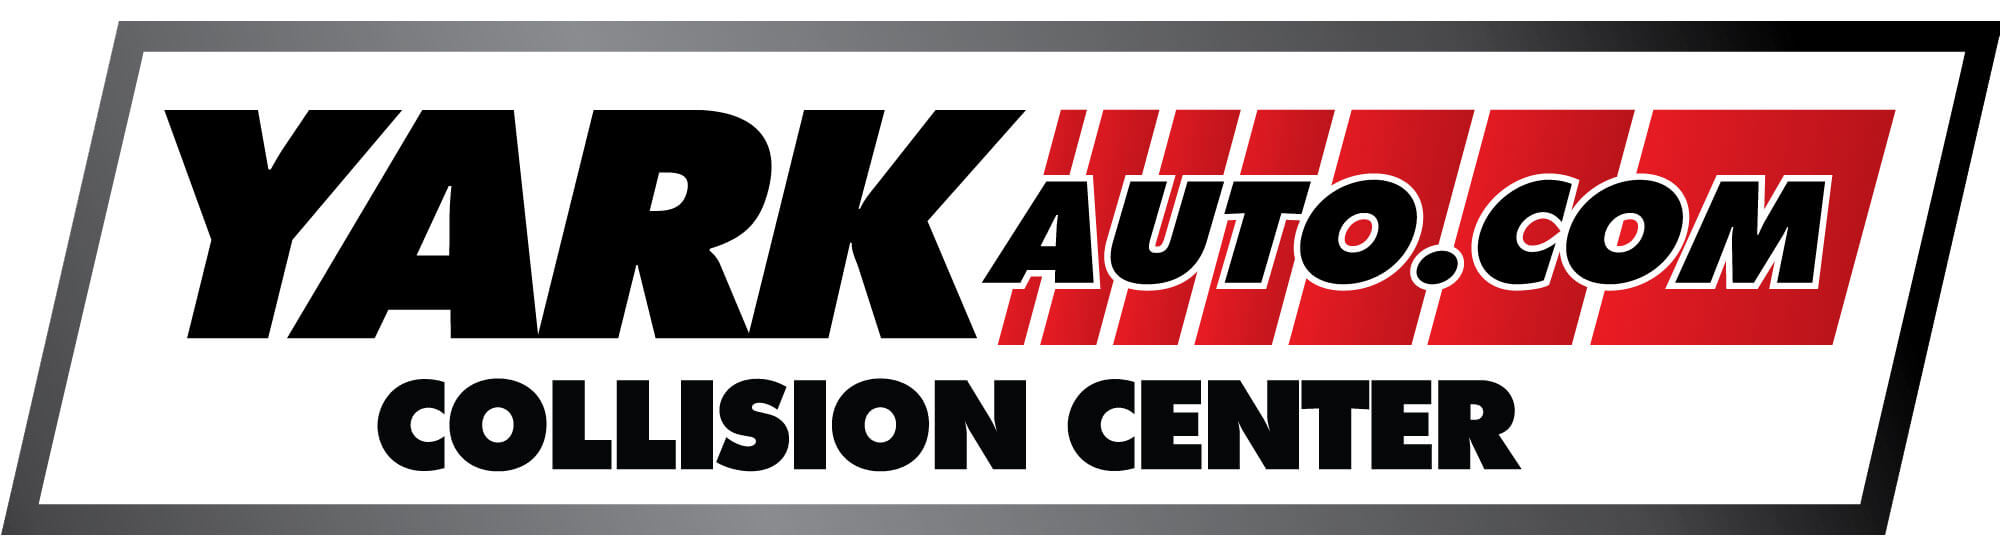 How To Remove Stickers From Your Auto Paint Yark Collision Center